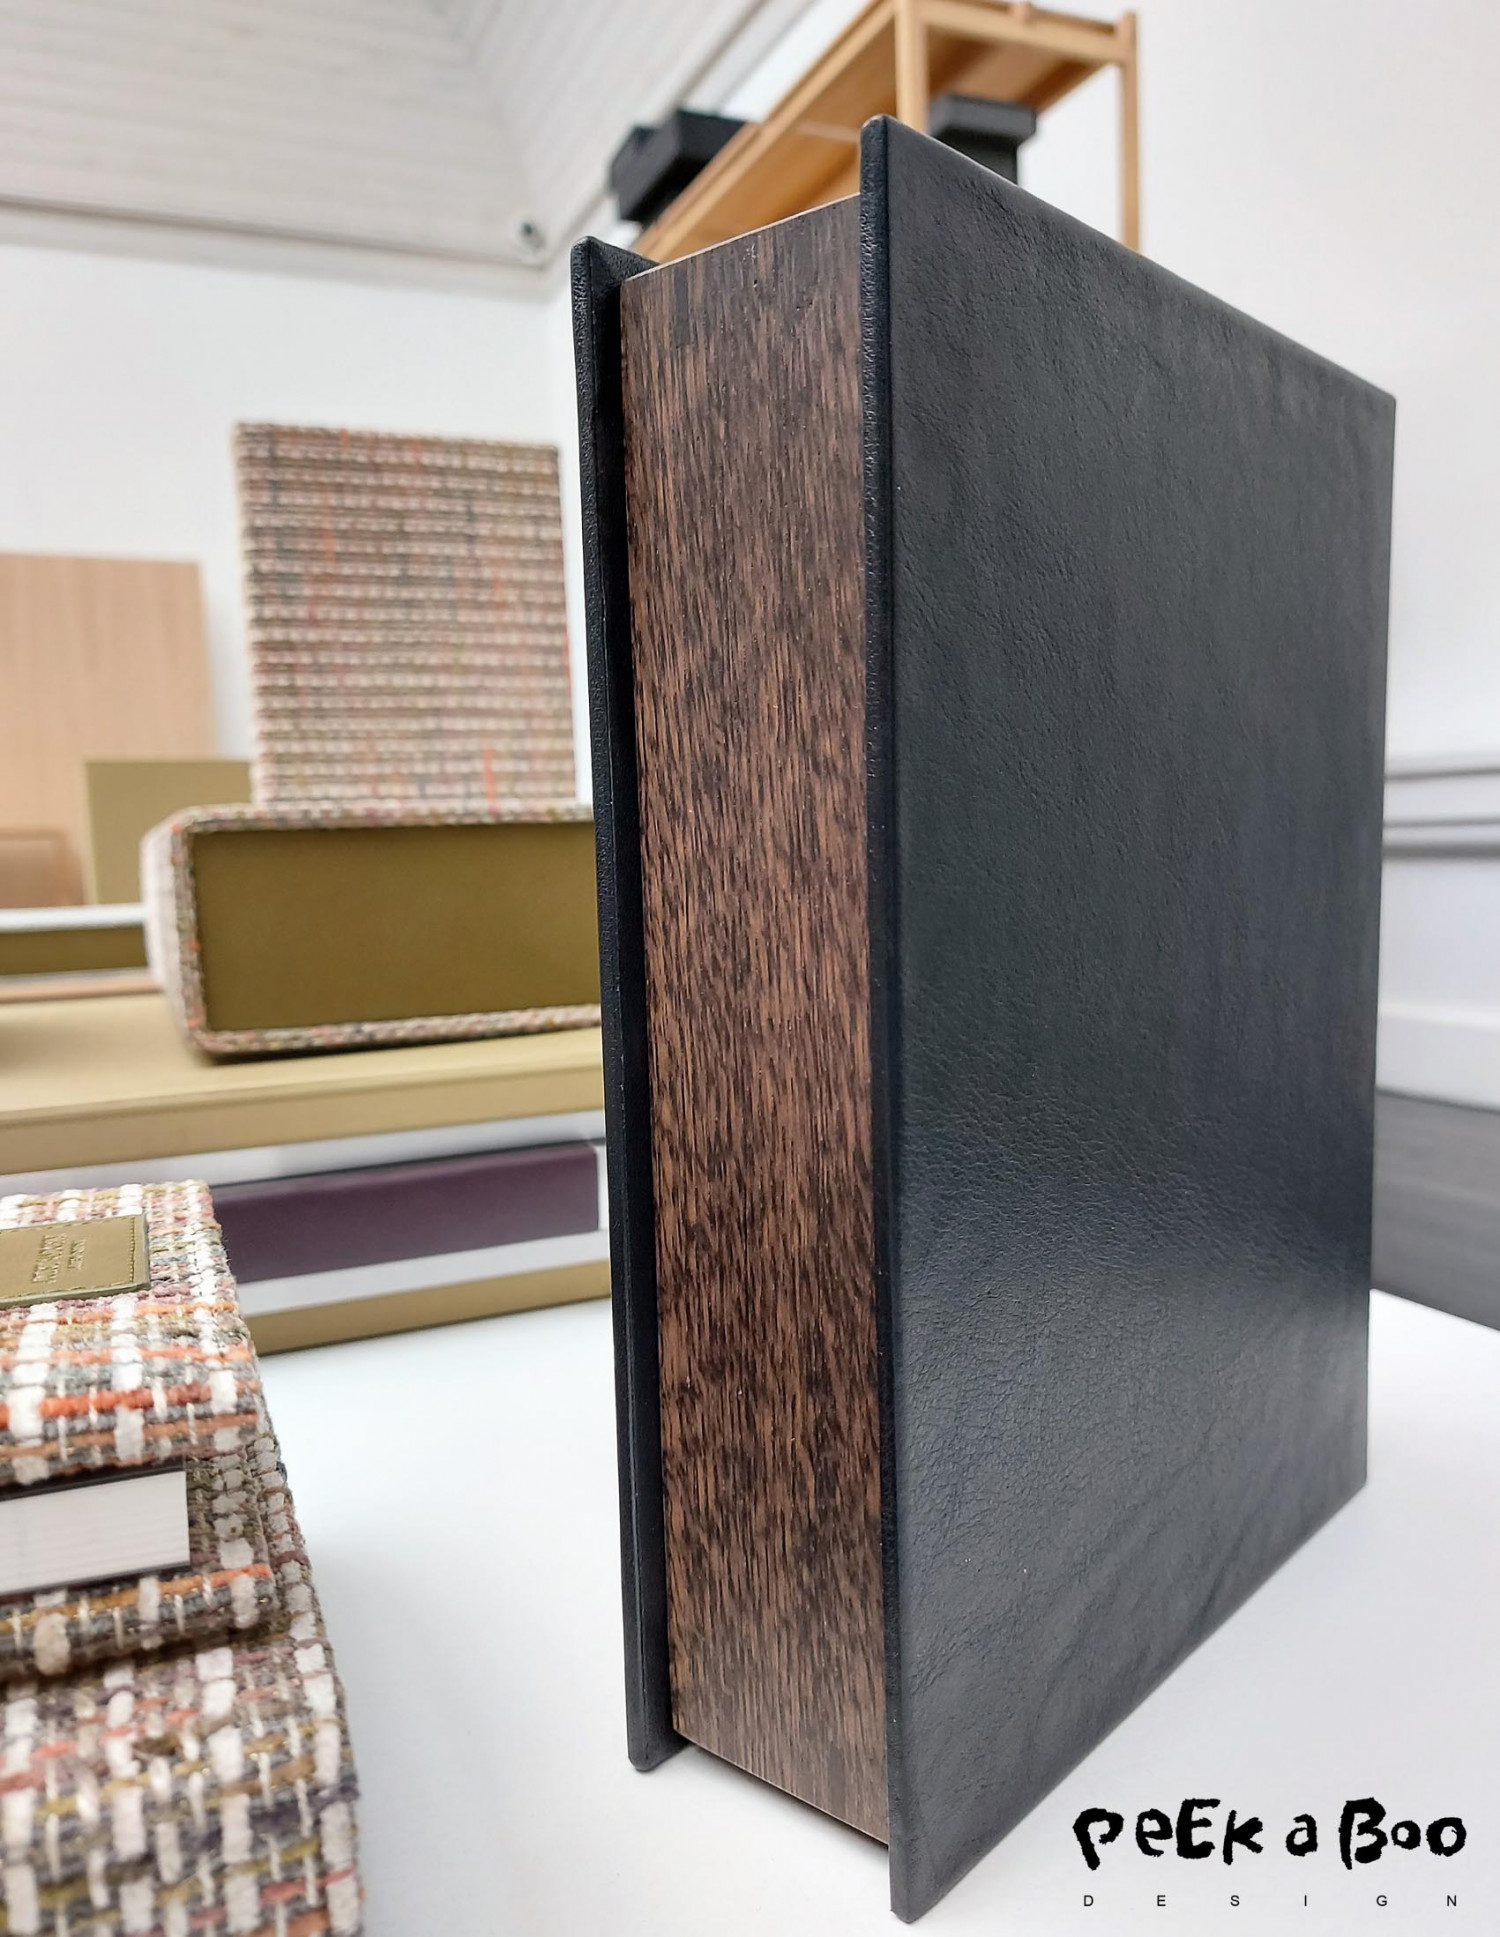 The new box from August Sandgren looks like a book when it is closed and put on a shelf.